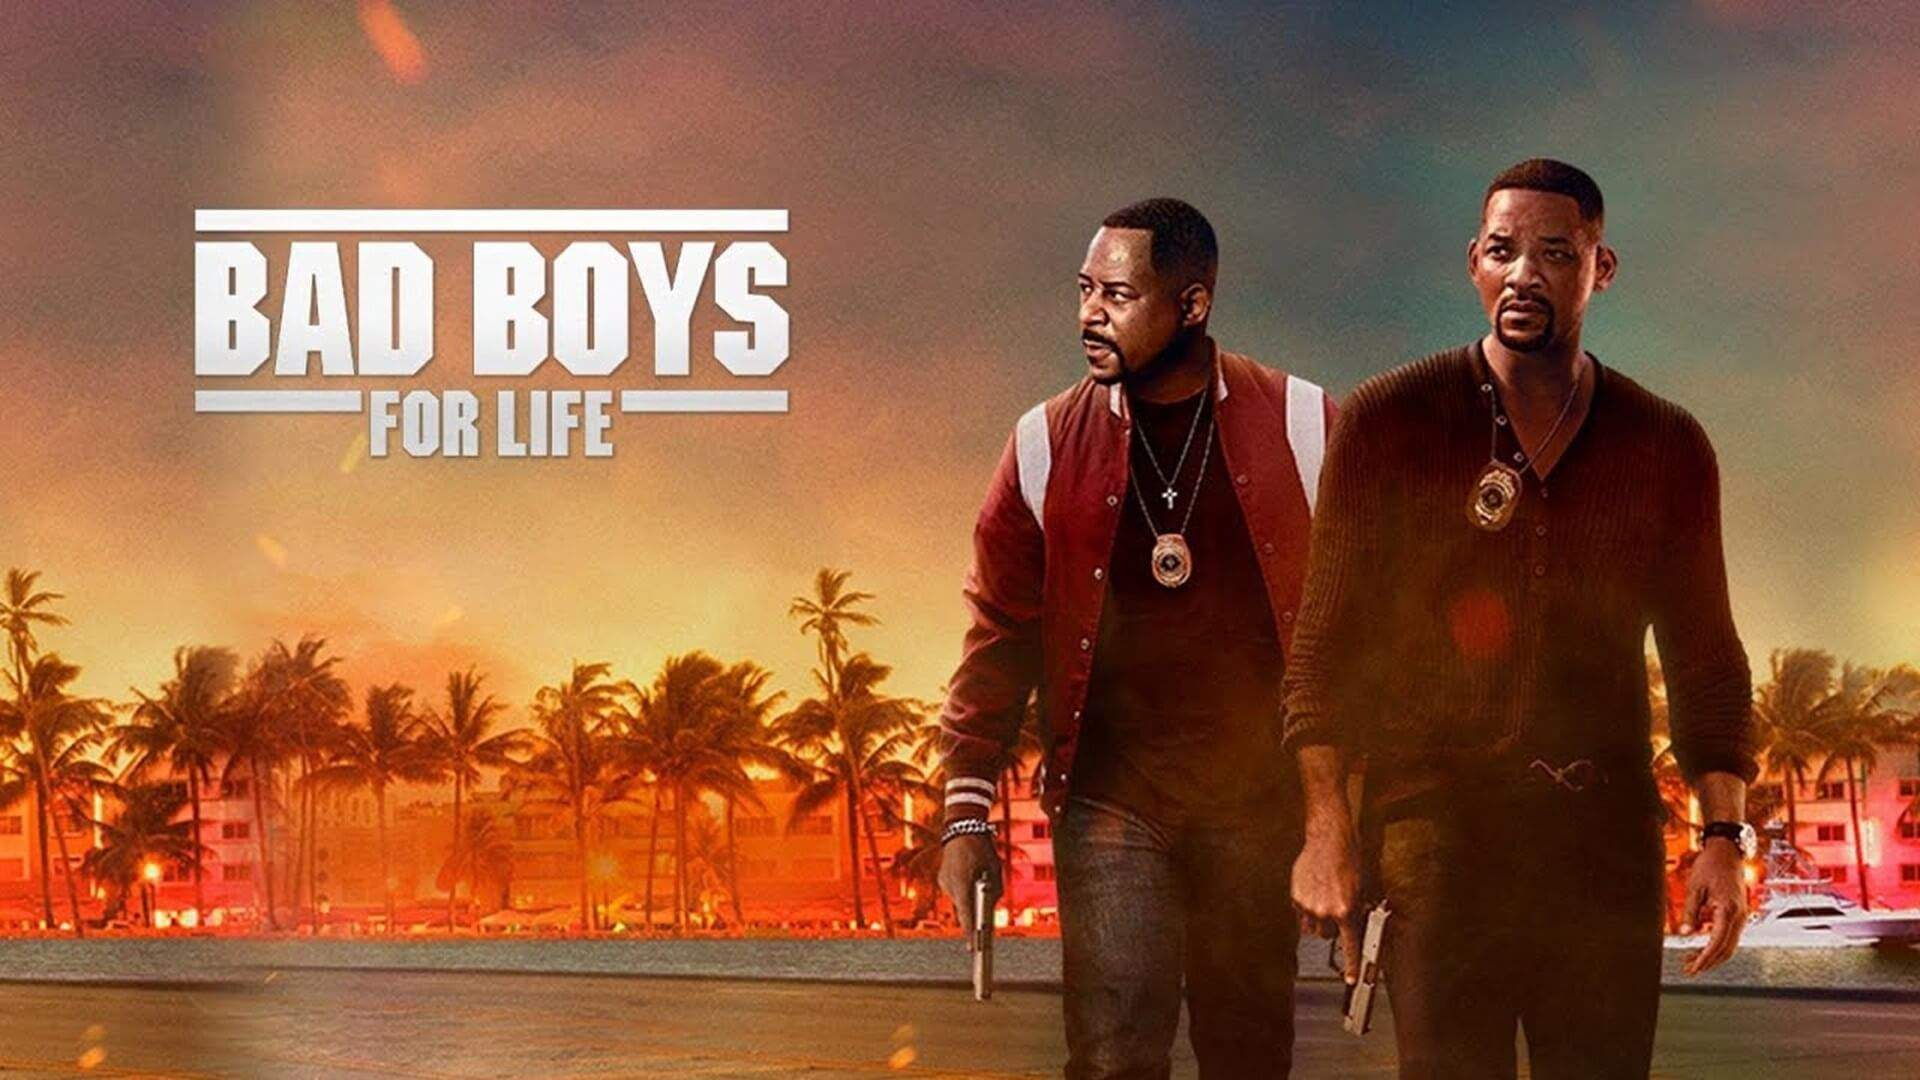 Watch Bad Boys for Life - 2020 online FREE Full Movie download